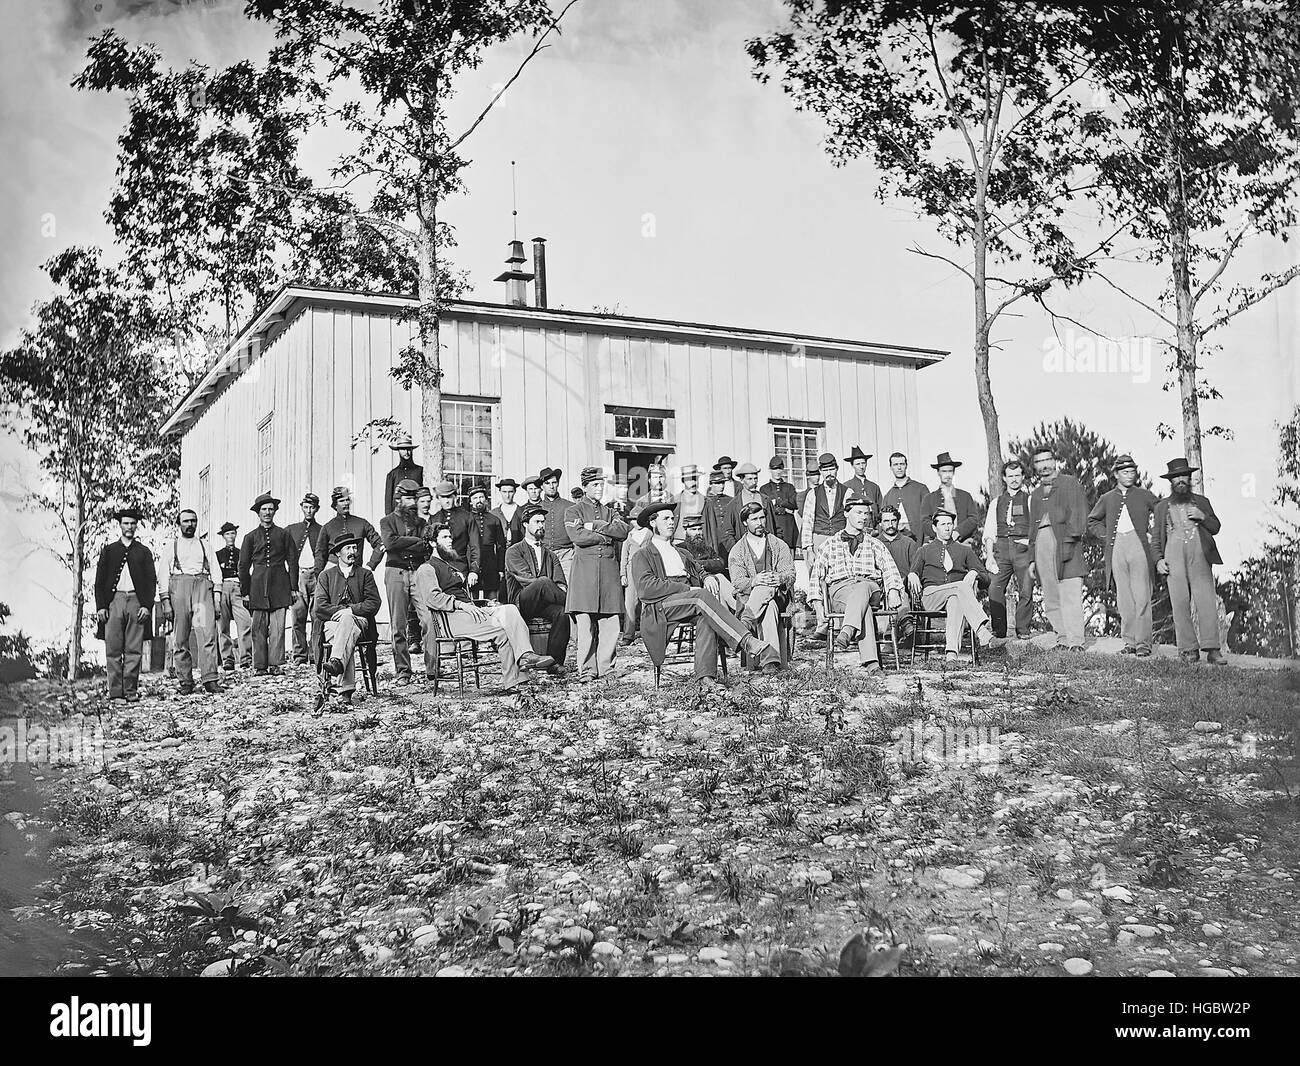 Group of soldiers at camp during American Civil War. - Stock Image